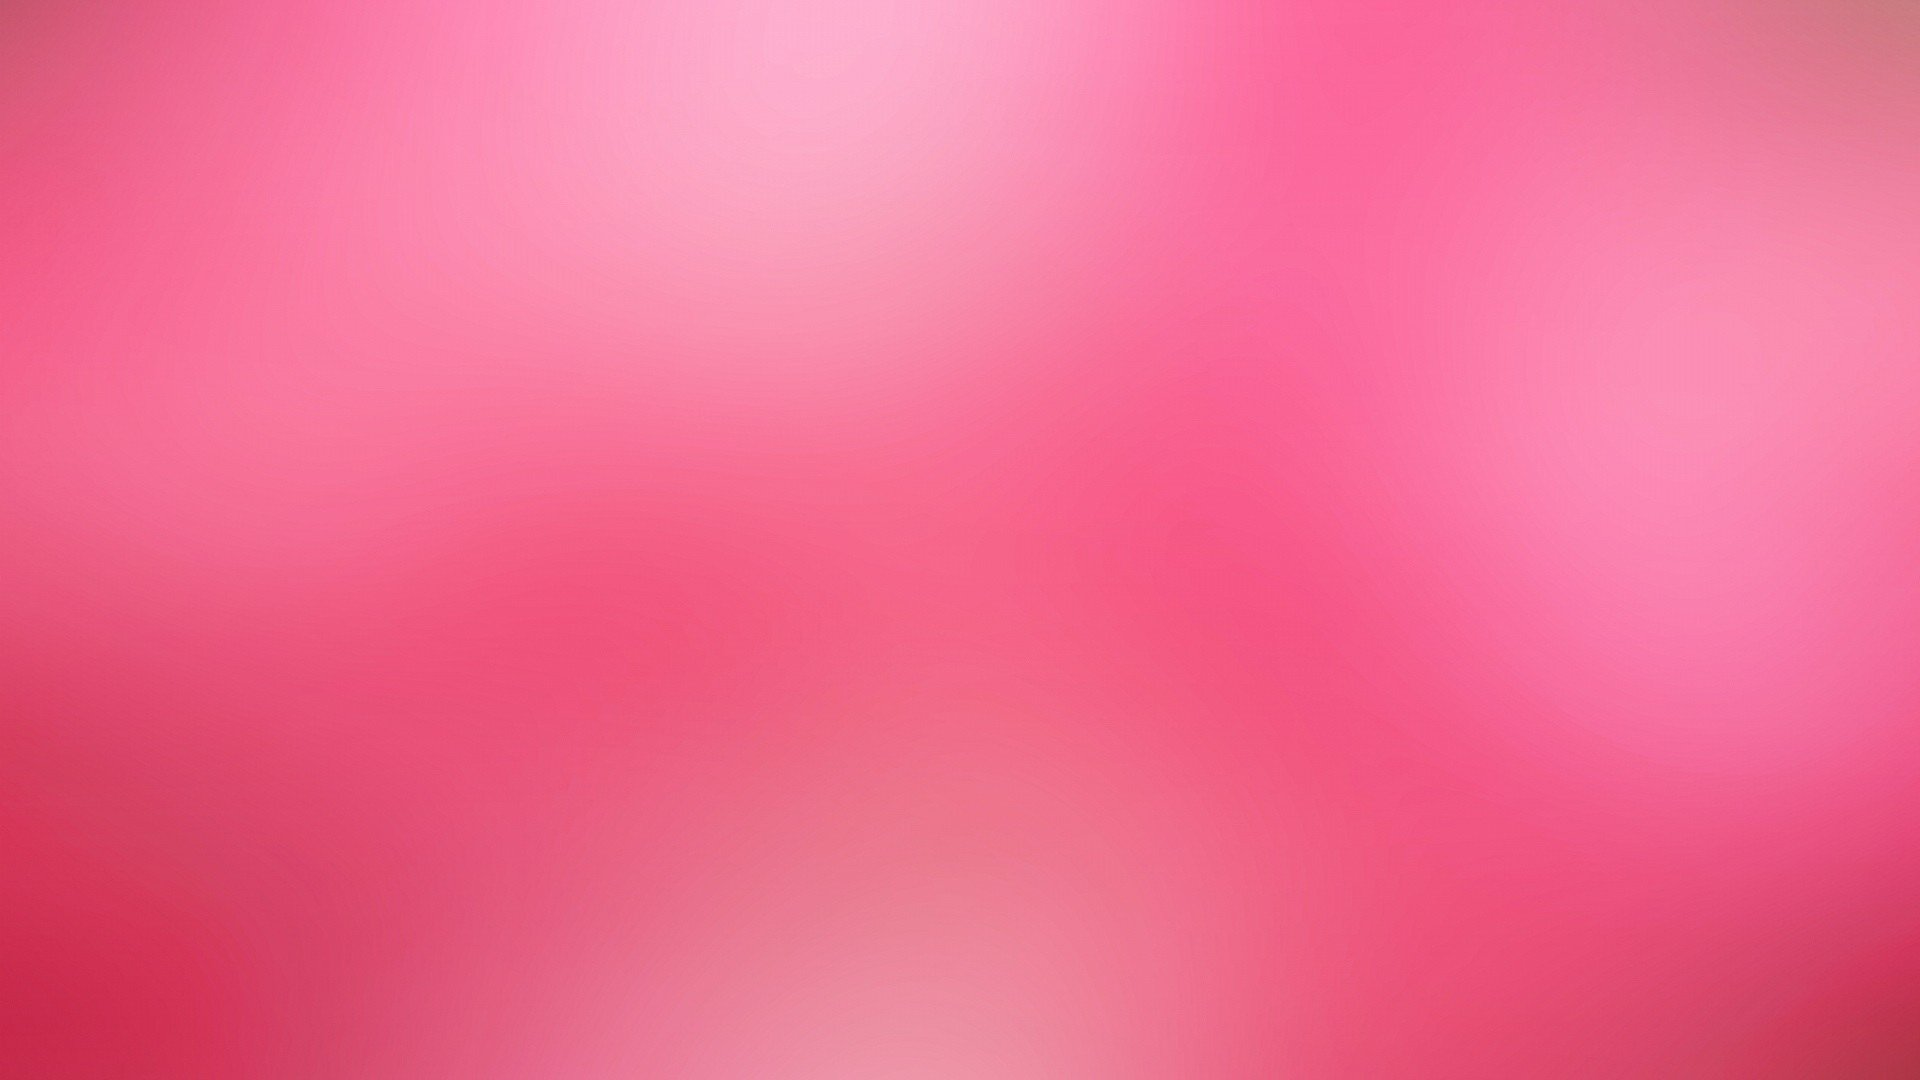 pink hd wallpapers desktop and mobile images amp photos